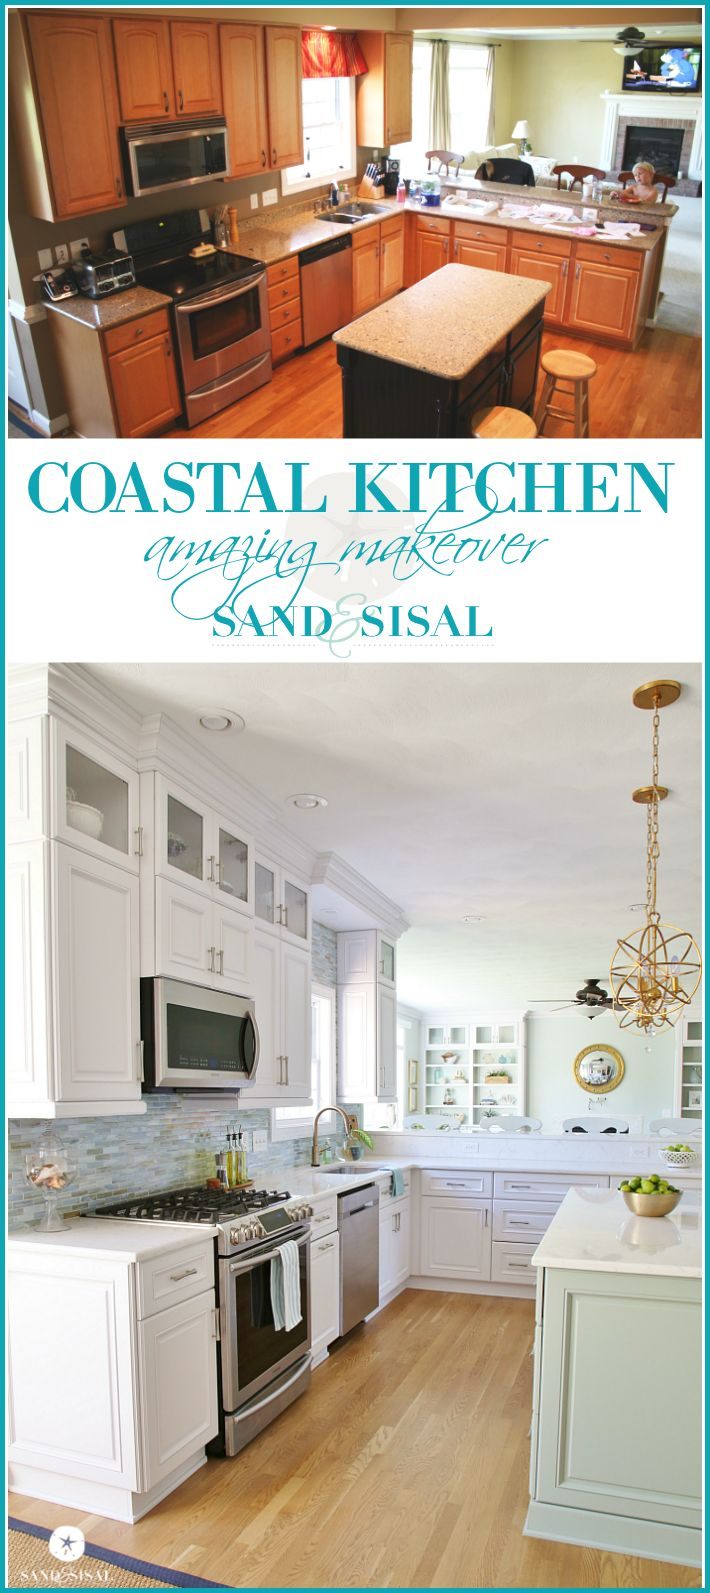 Coastal Kitchen Makeover - sandandsisal.com                                                                                                                                                                                 More